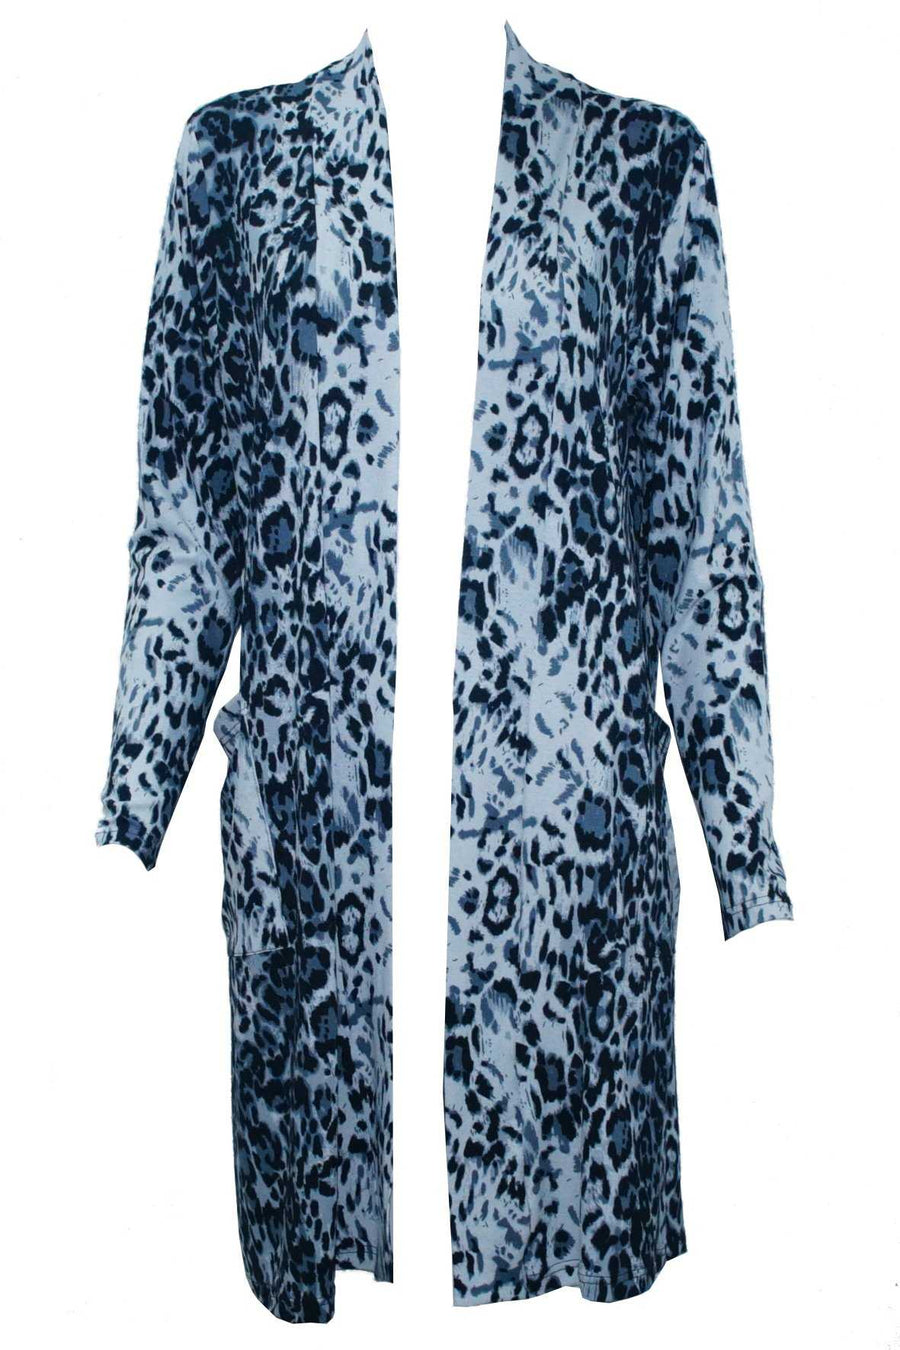 ANIMAL PRINT WEEKEND CARDI